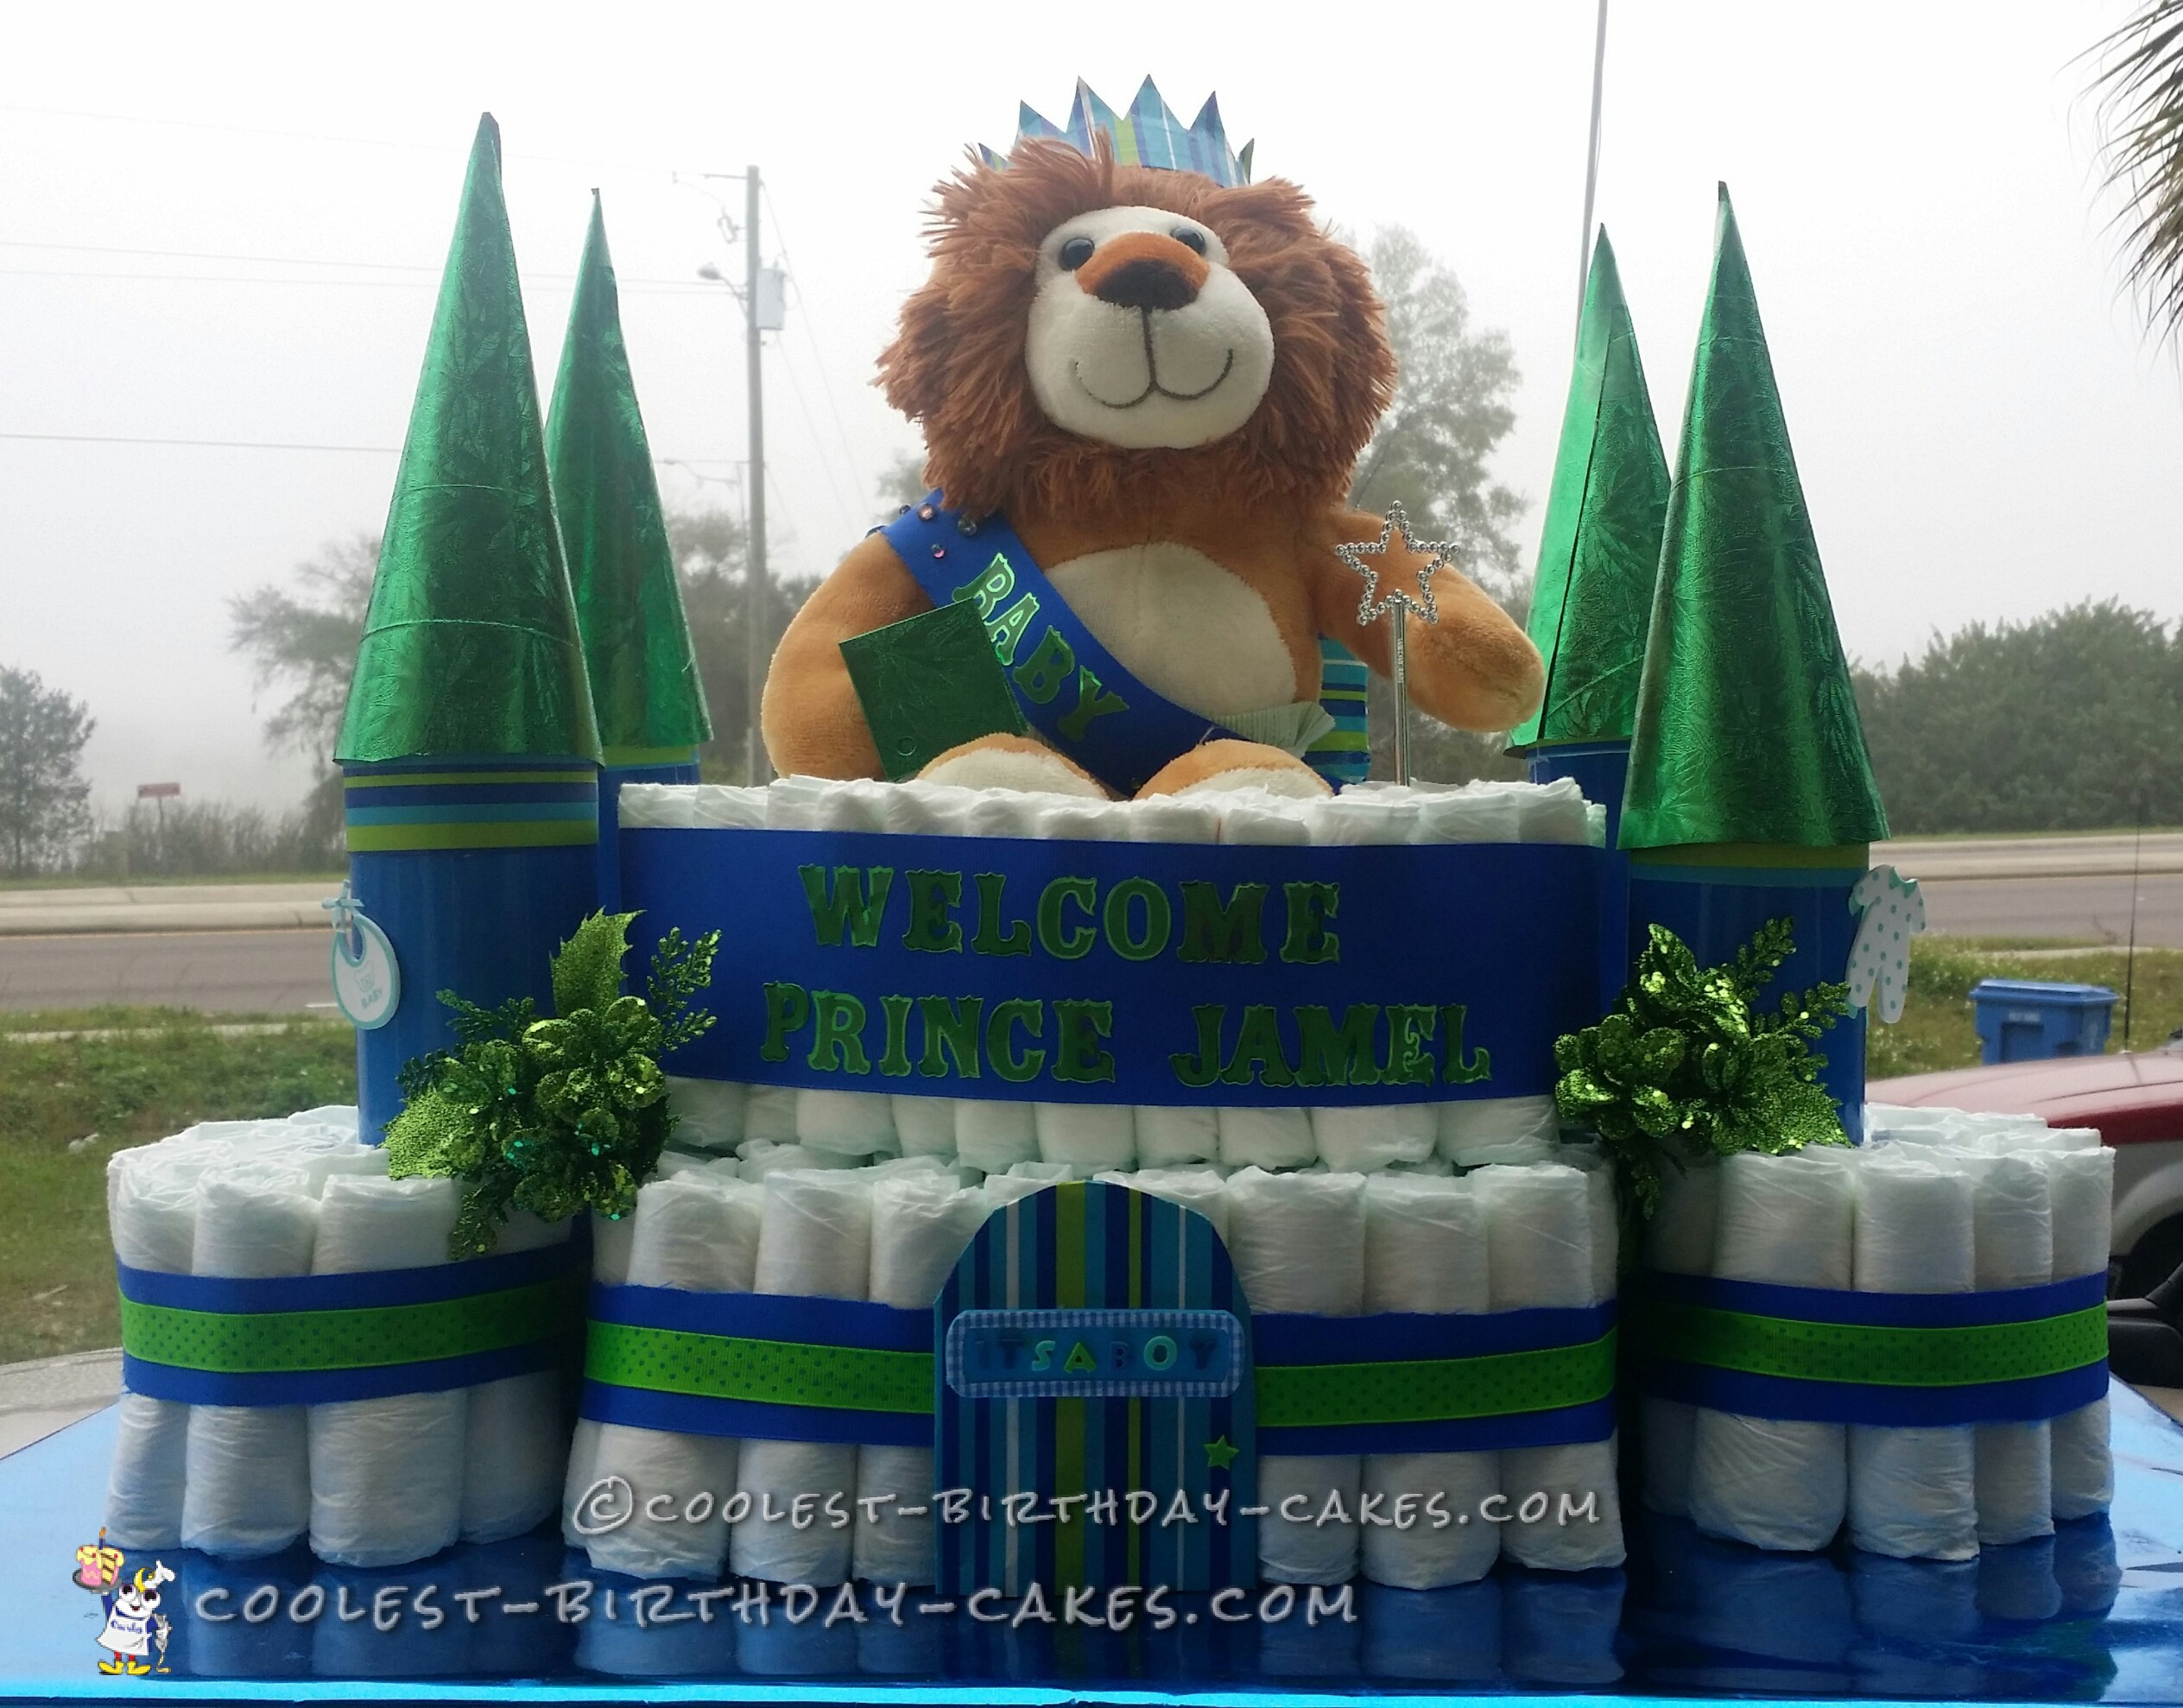 Prince of the Castle Diaper Cake